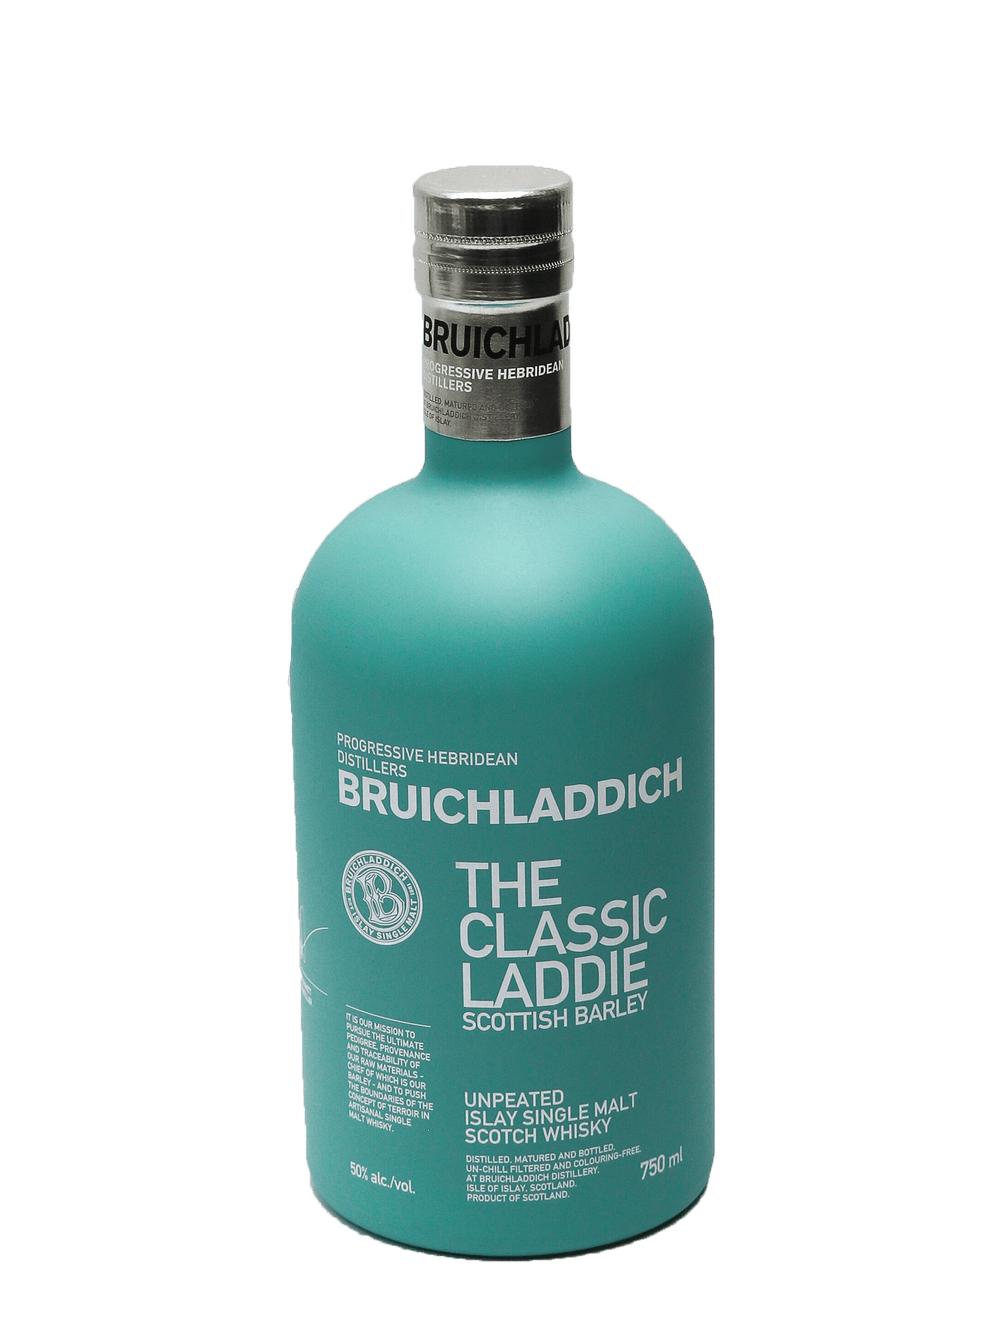 Bruichladdich Classic Laddie Single Malt Scotch